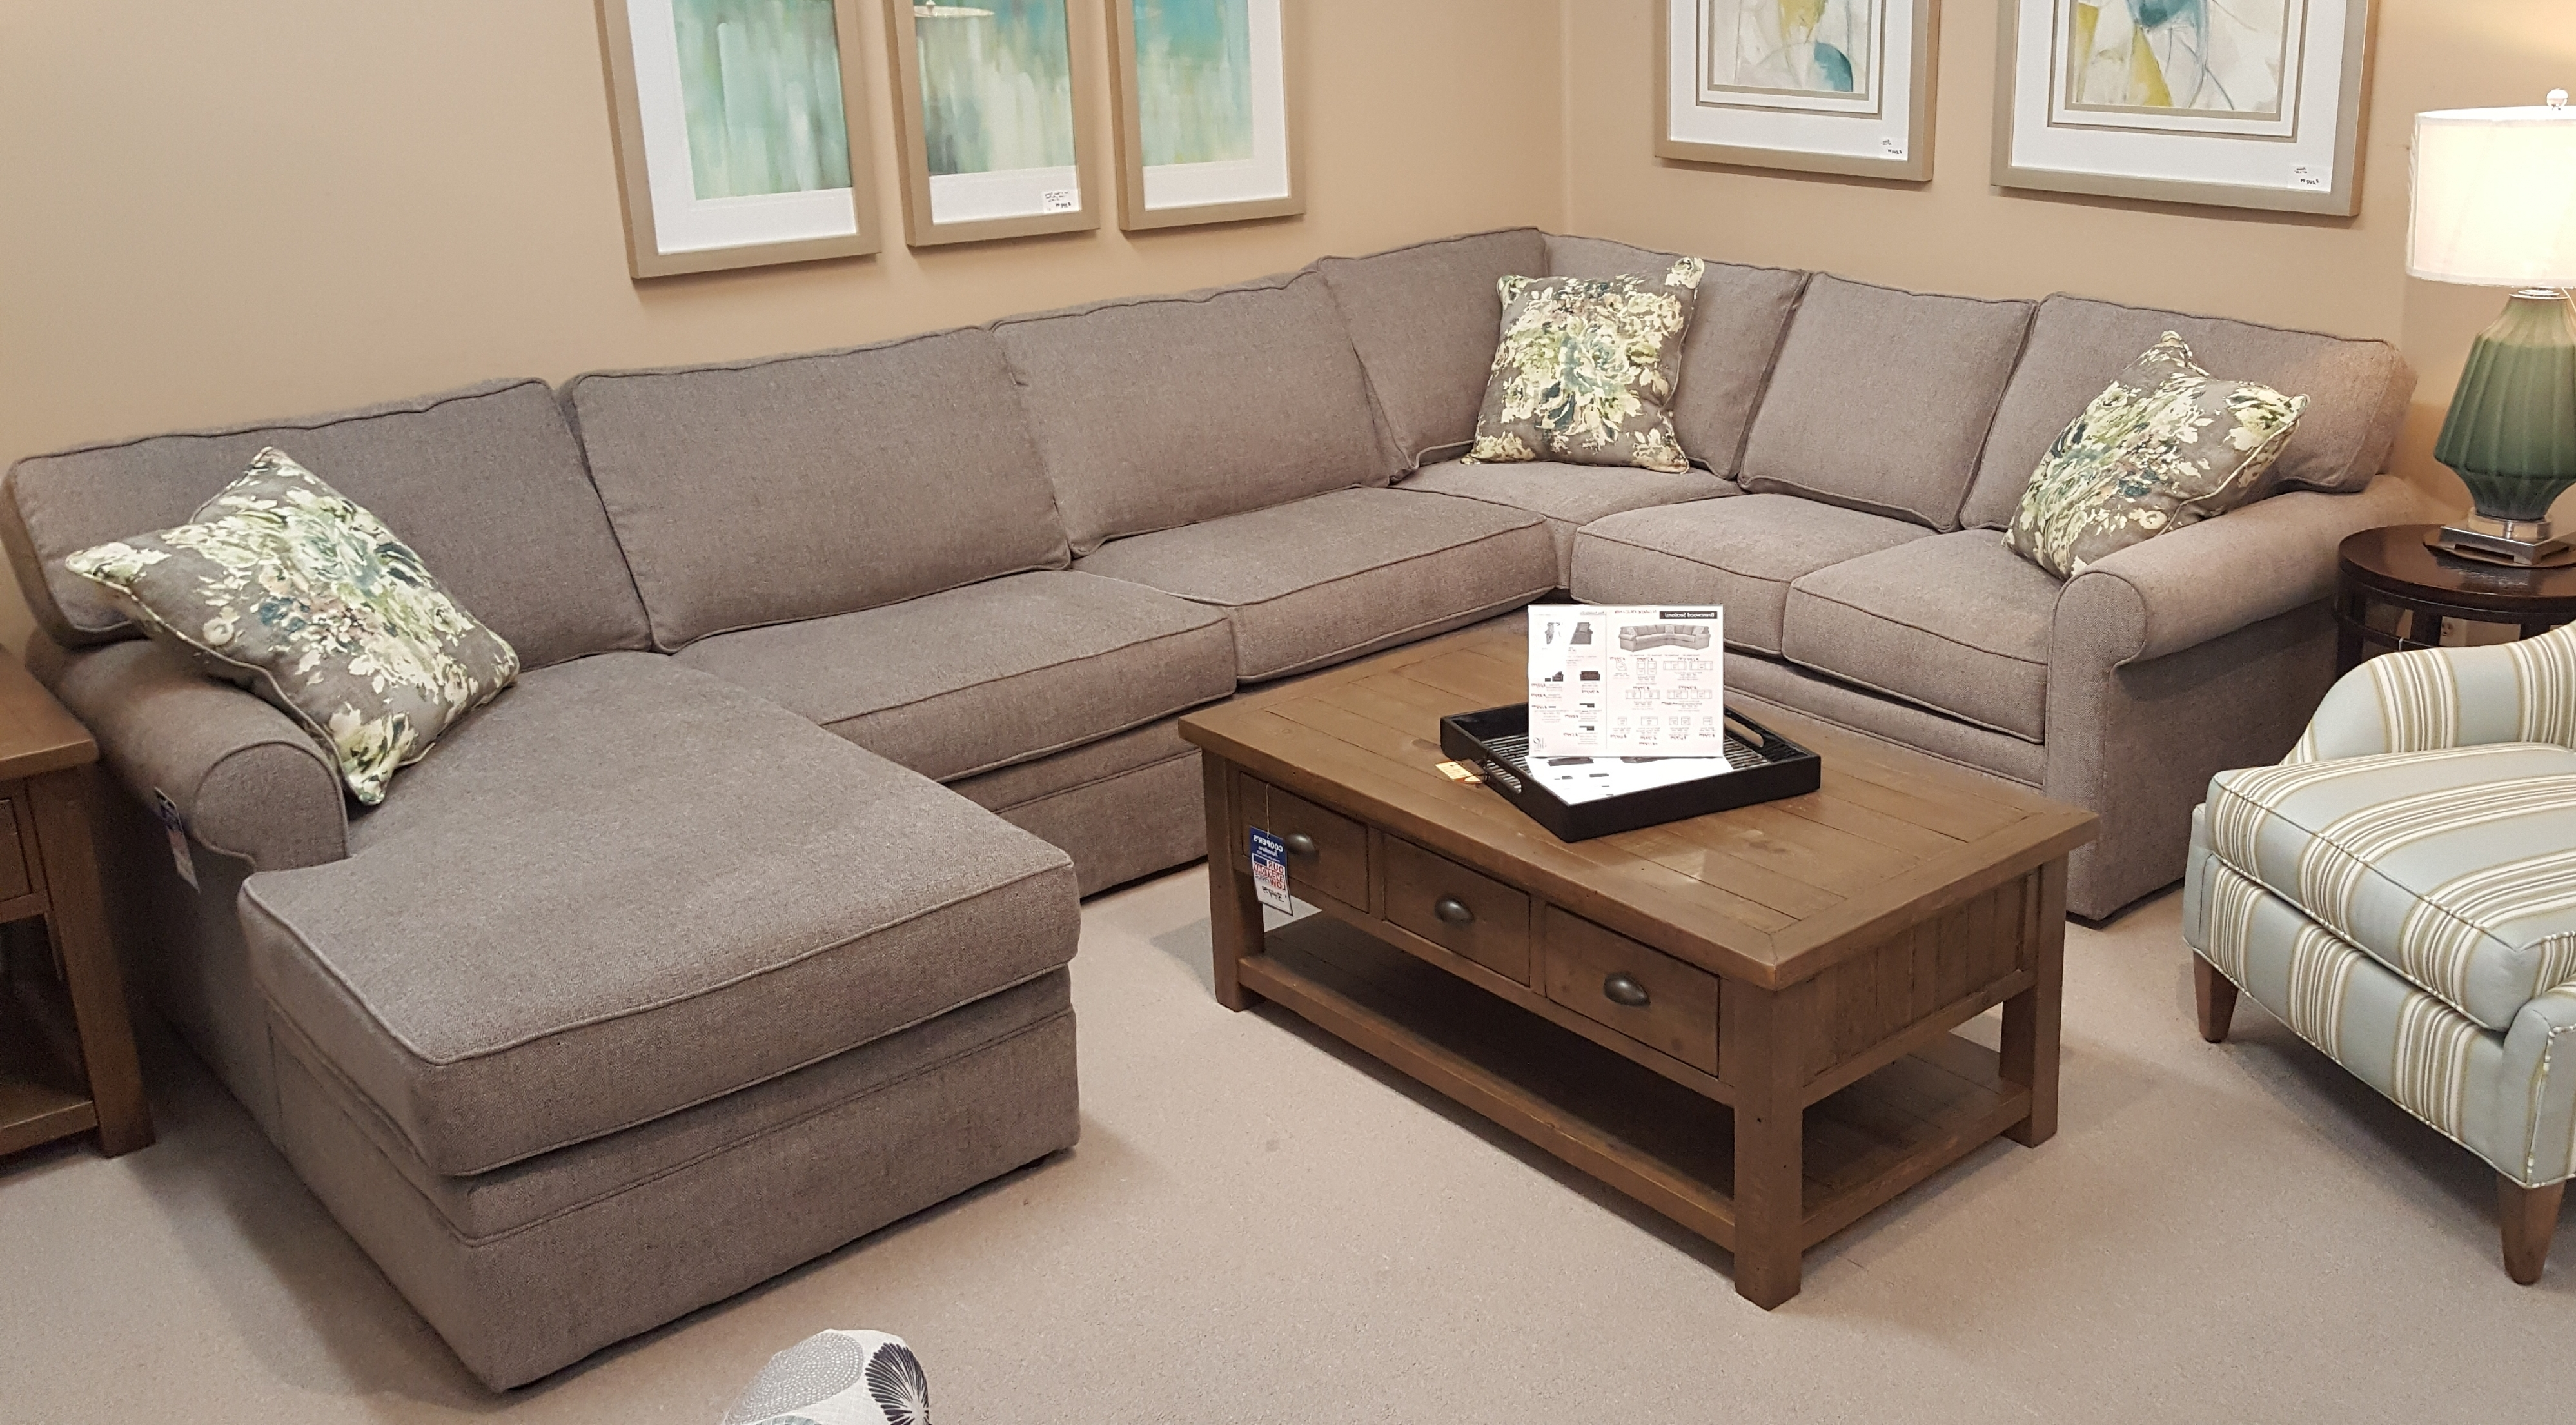 Sofas, Recliners, Sectionals Pertaining To Durham Region Sectional Sofas (View 18 of 20)